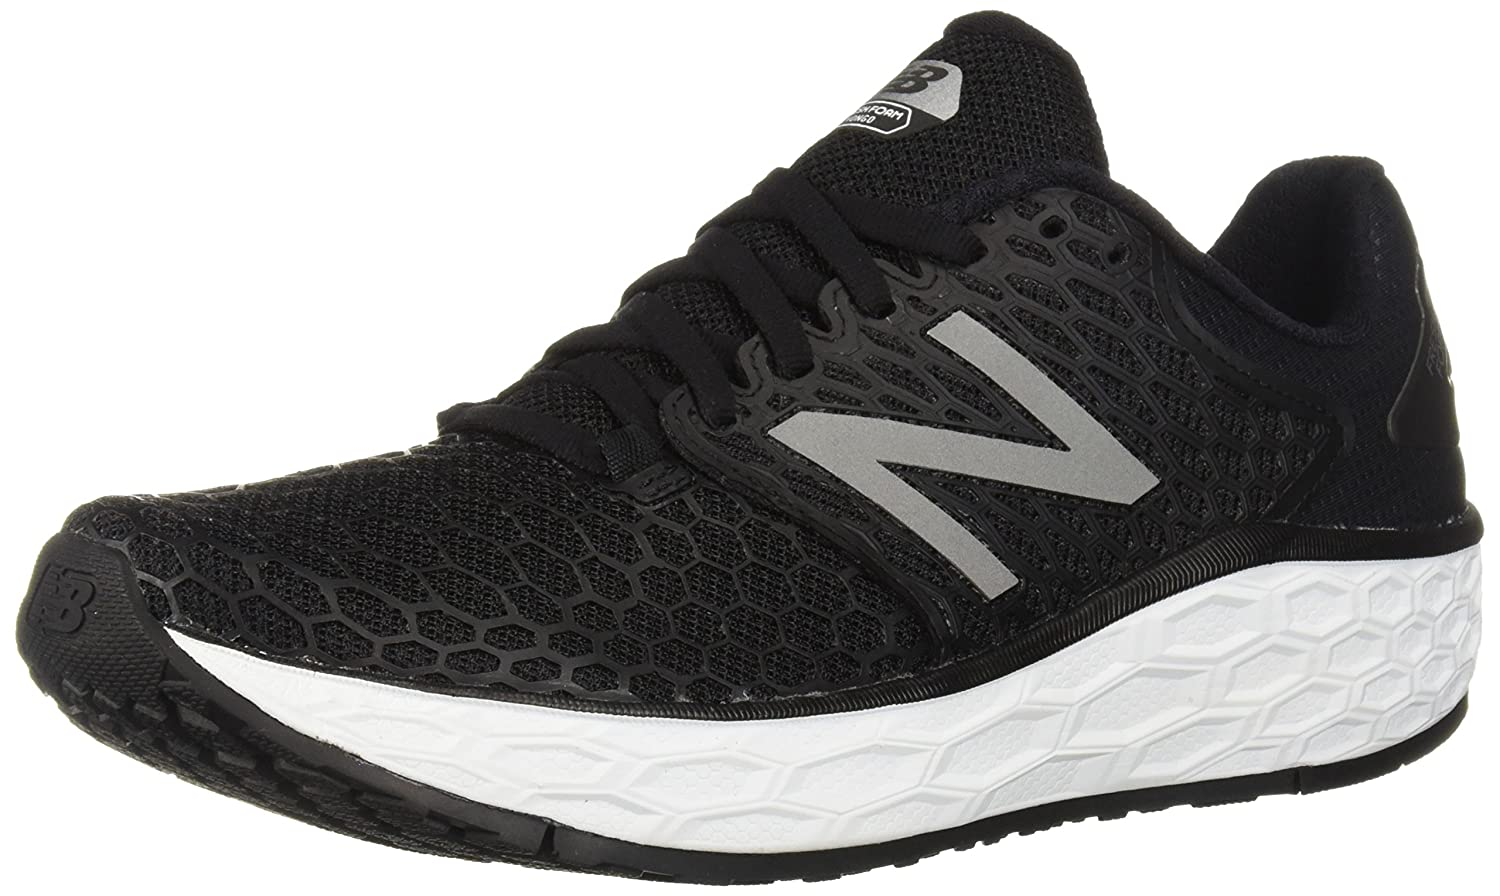 New Balance Women's Vongo V3 Fresh Foam Running Shoe B075R3RDPZ 10.5 B(M) US|Black